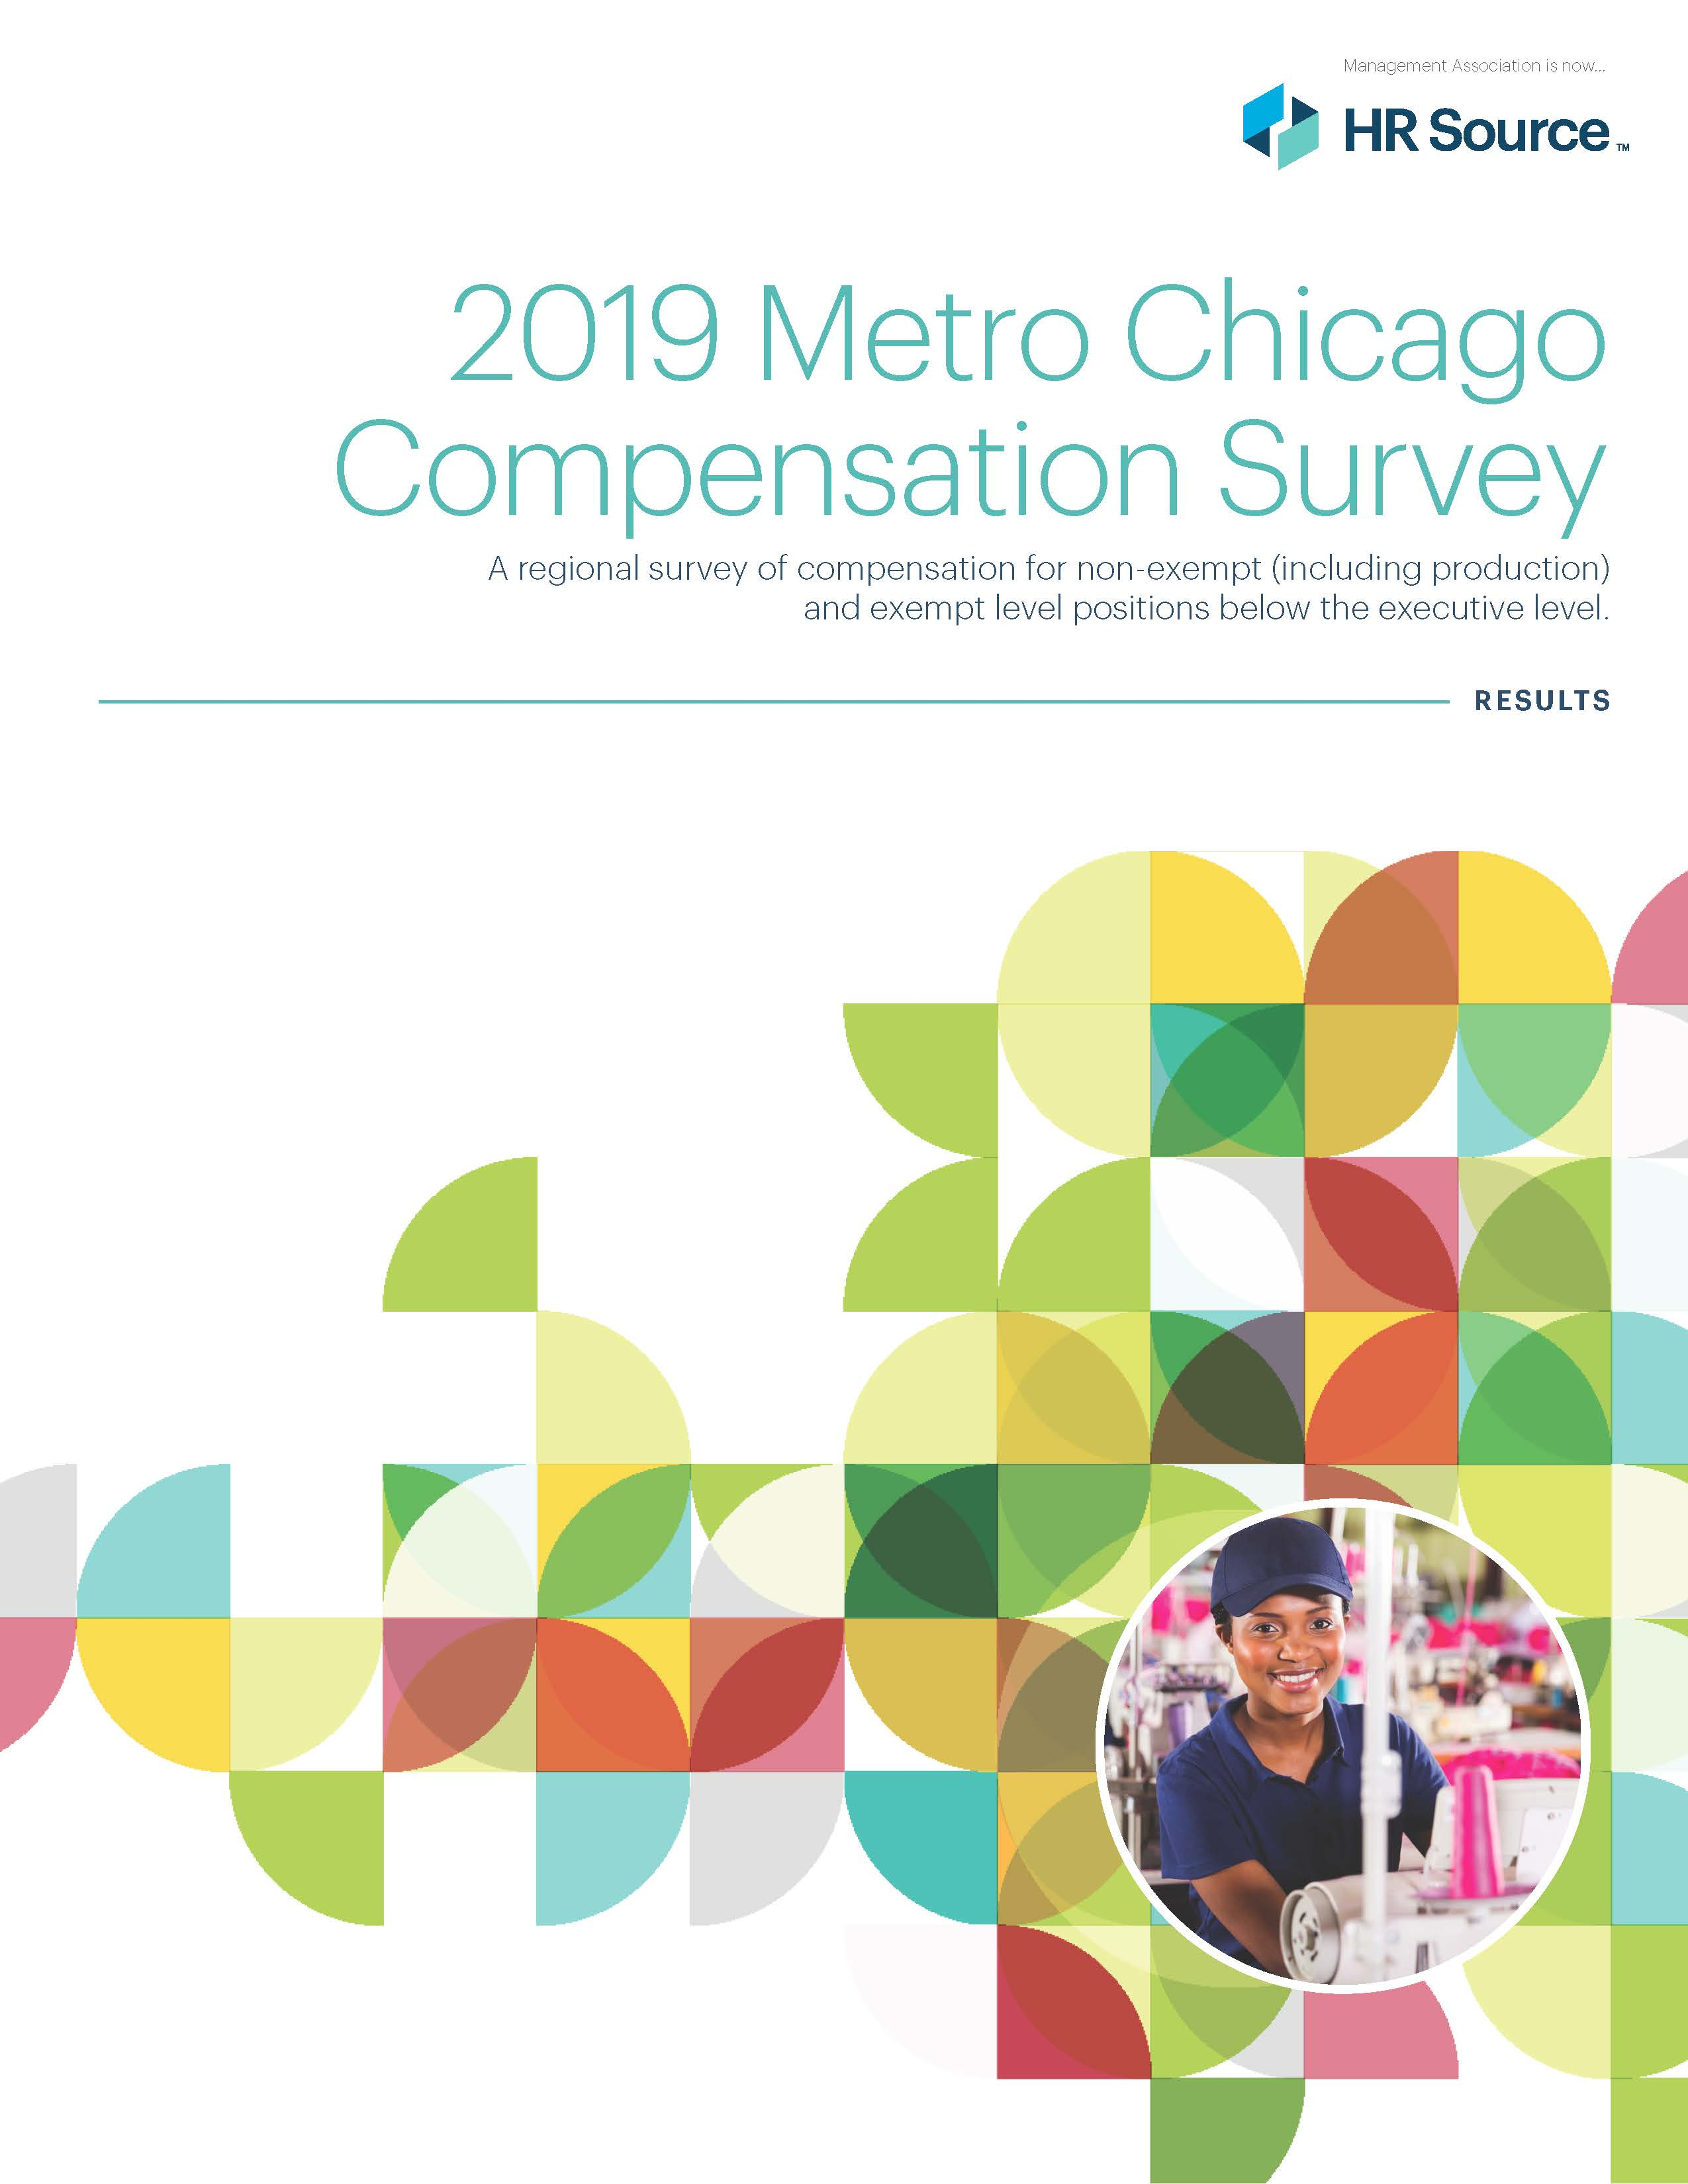 2019 Metro Chicago Compensation Survey